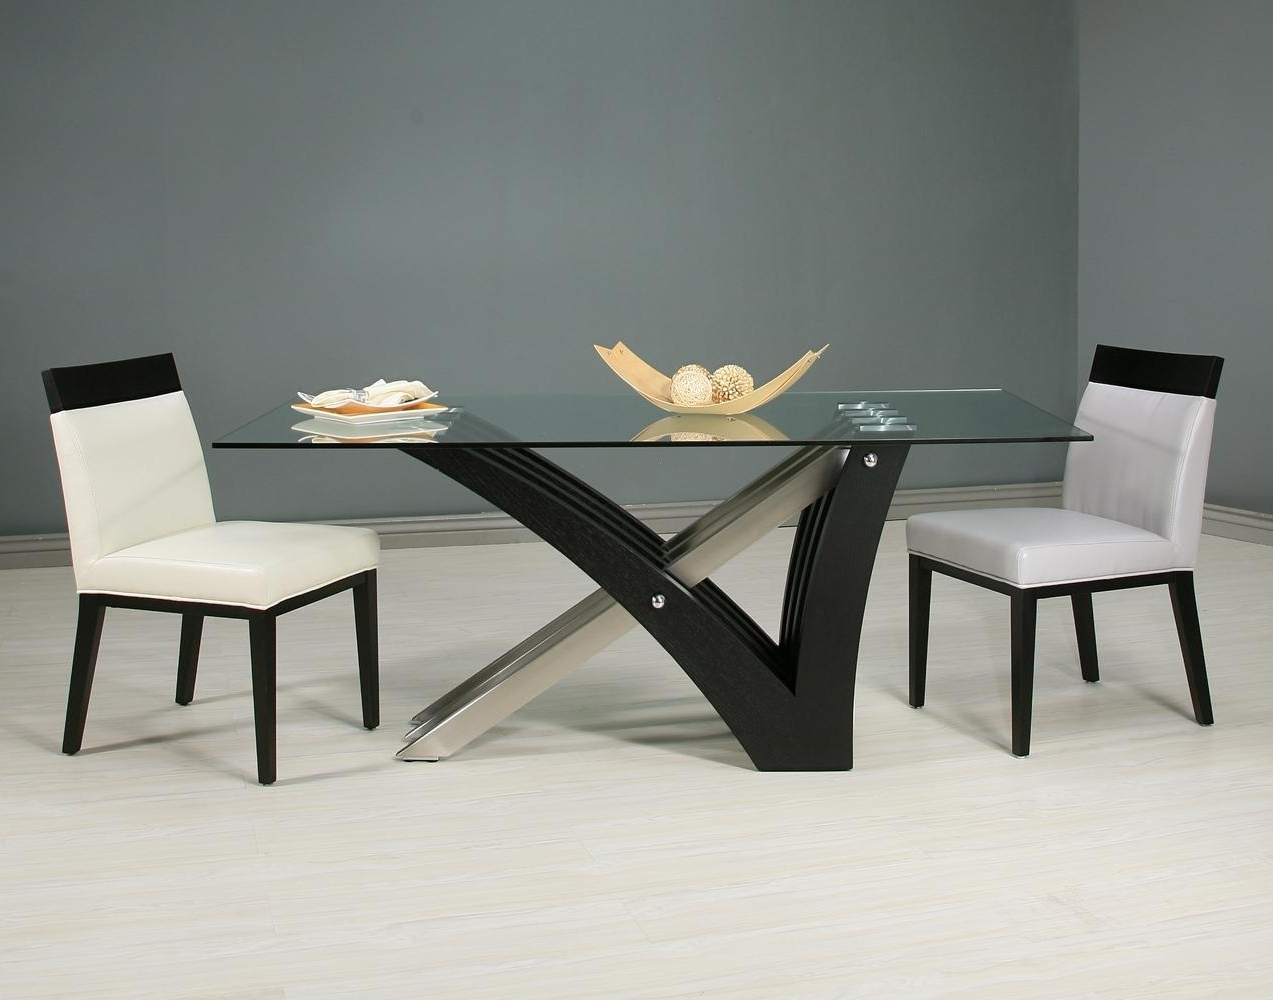 Glass Dining Tables With Wooden Legs Within Widely Used Simple Rectangle Clear Glass Top Dining Table With Black Wooden (View 16 of 25)